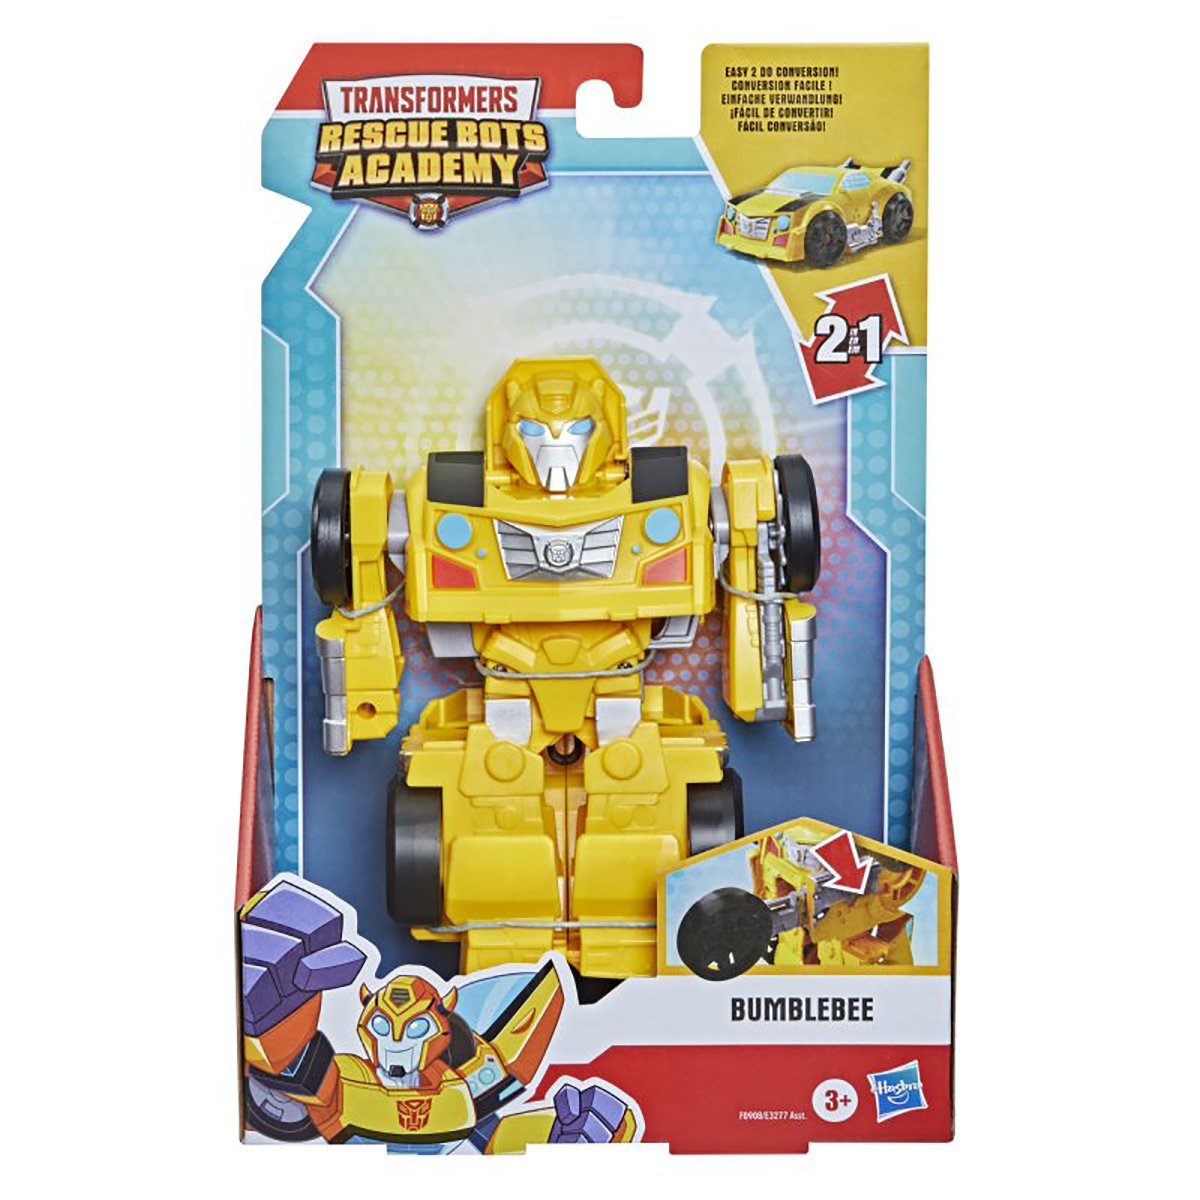 Figurina Transformers Rescue Bots Academy, Bumblebee, F0908